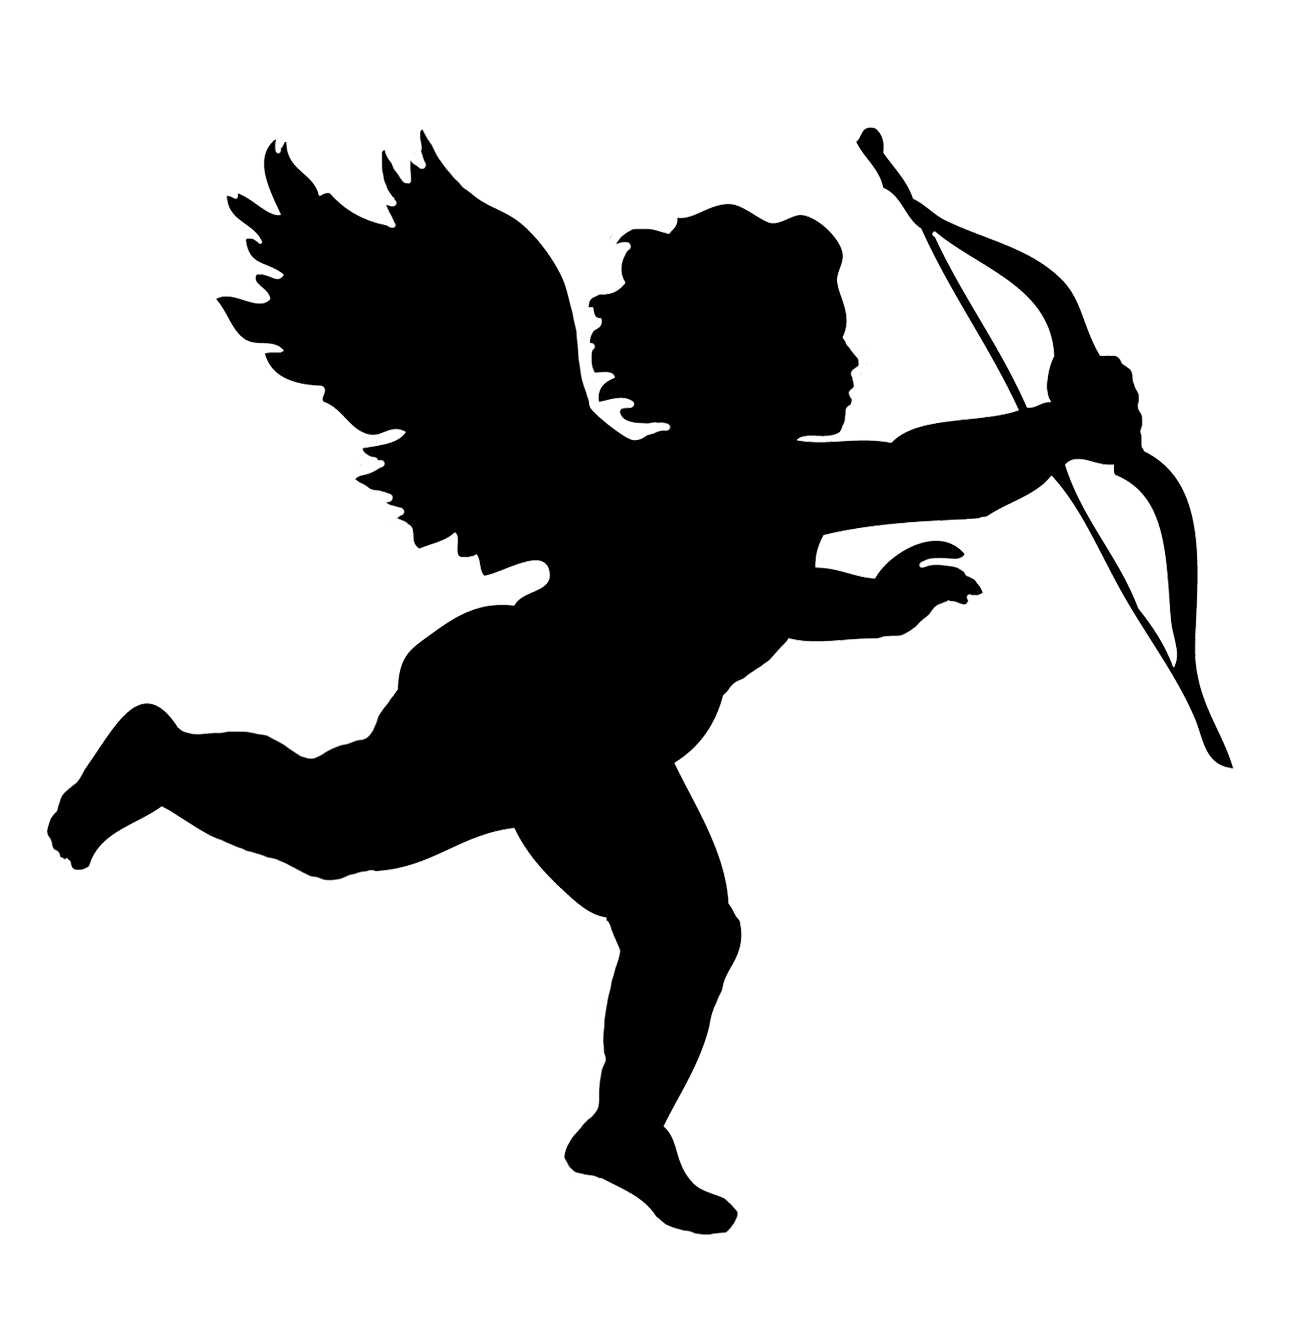 Angel silhouette png. Silhouettes clipart